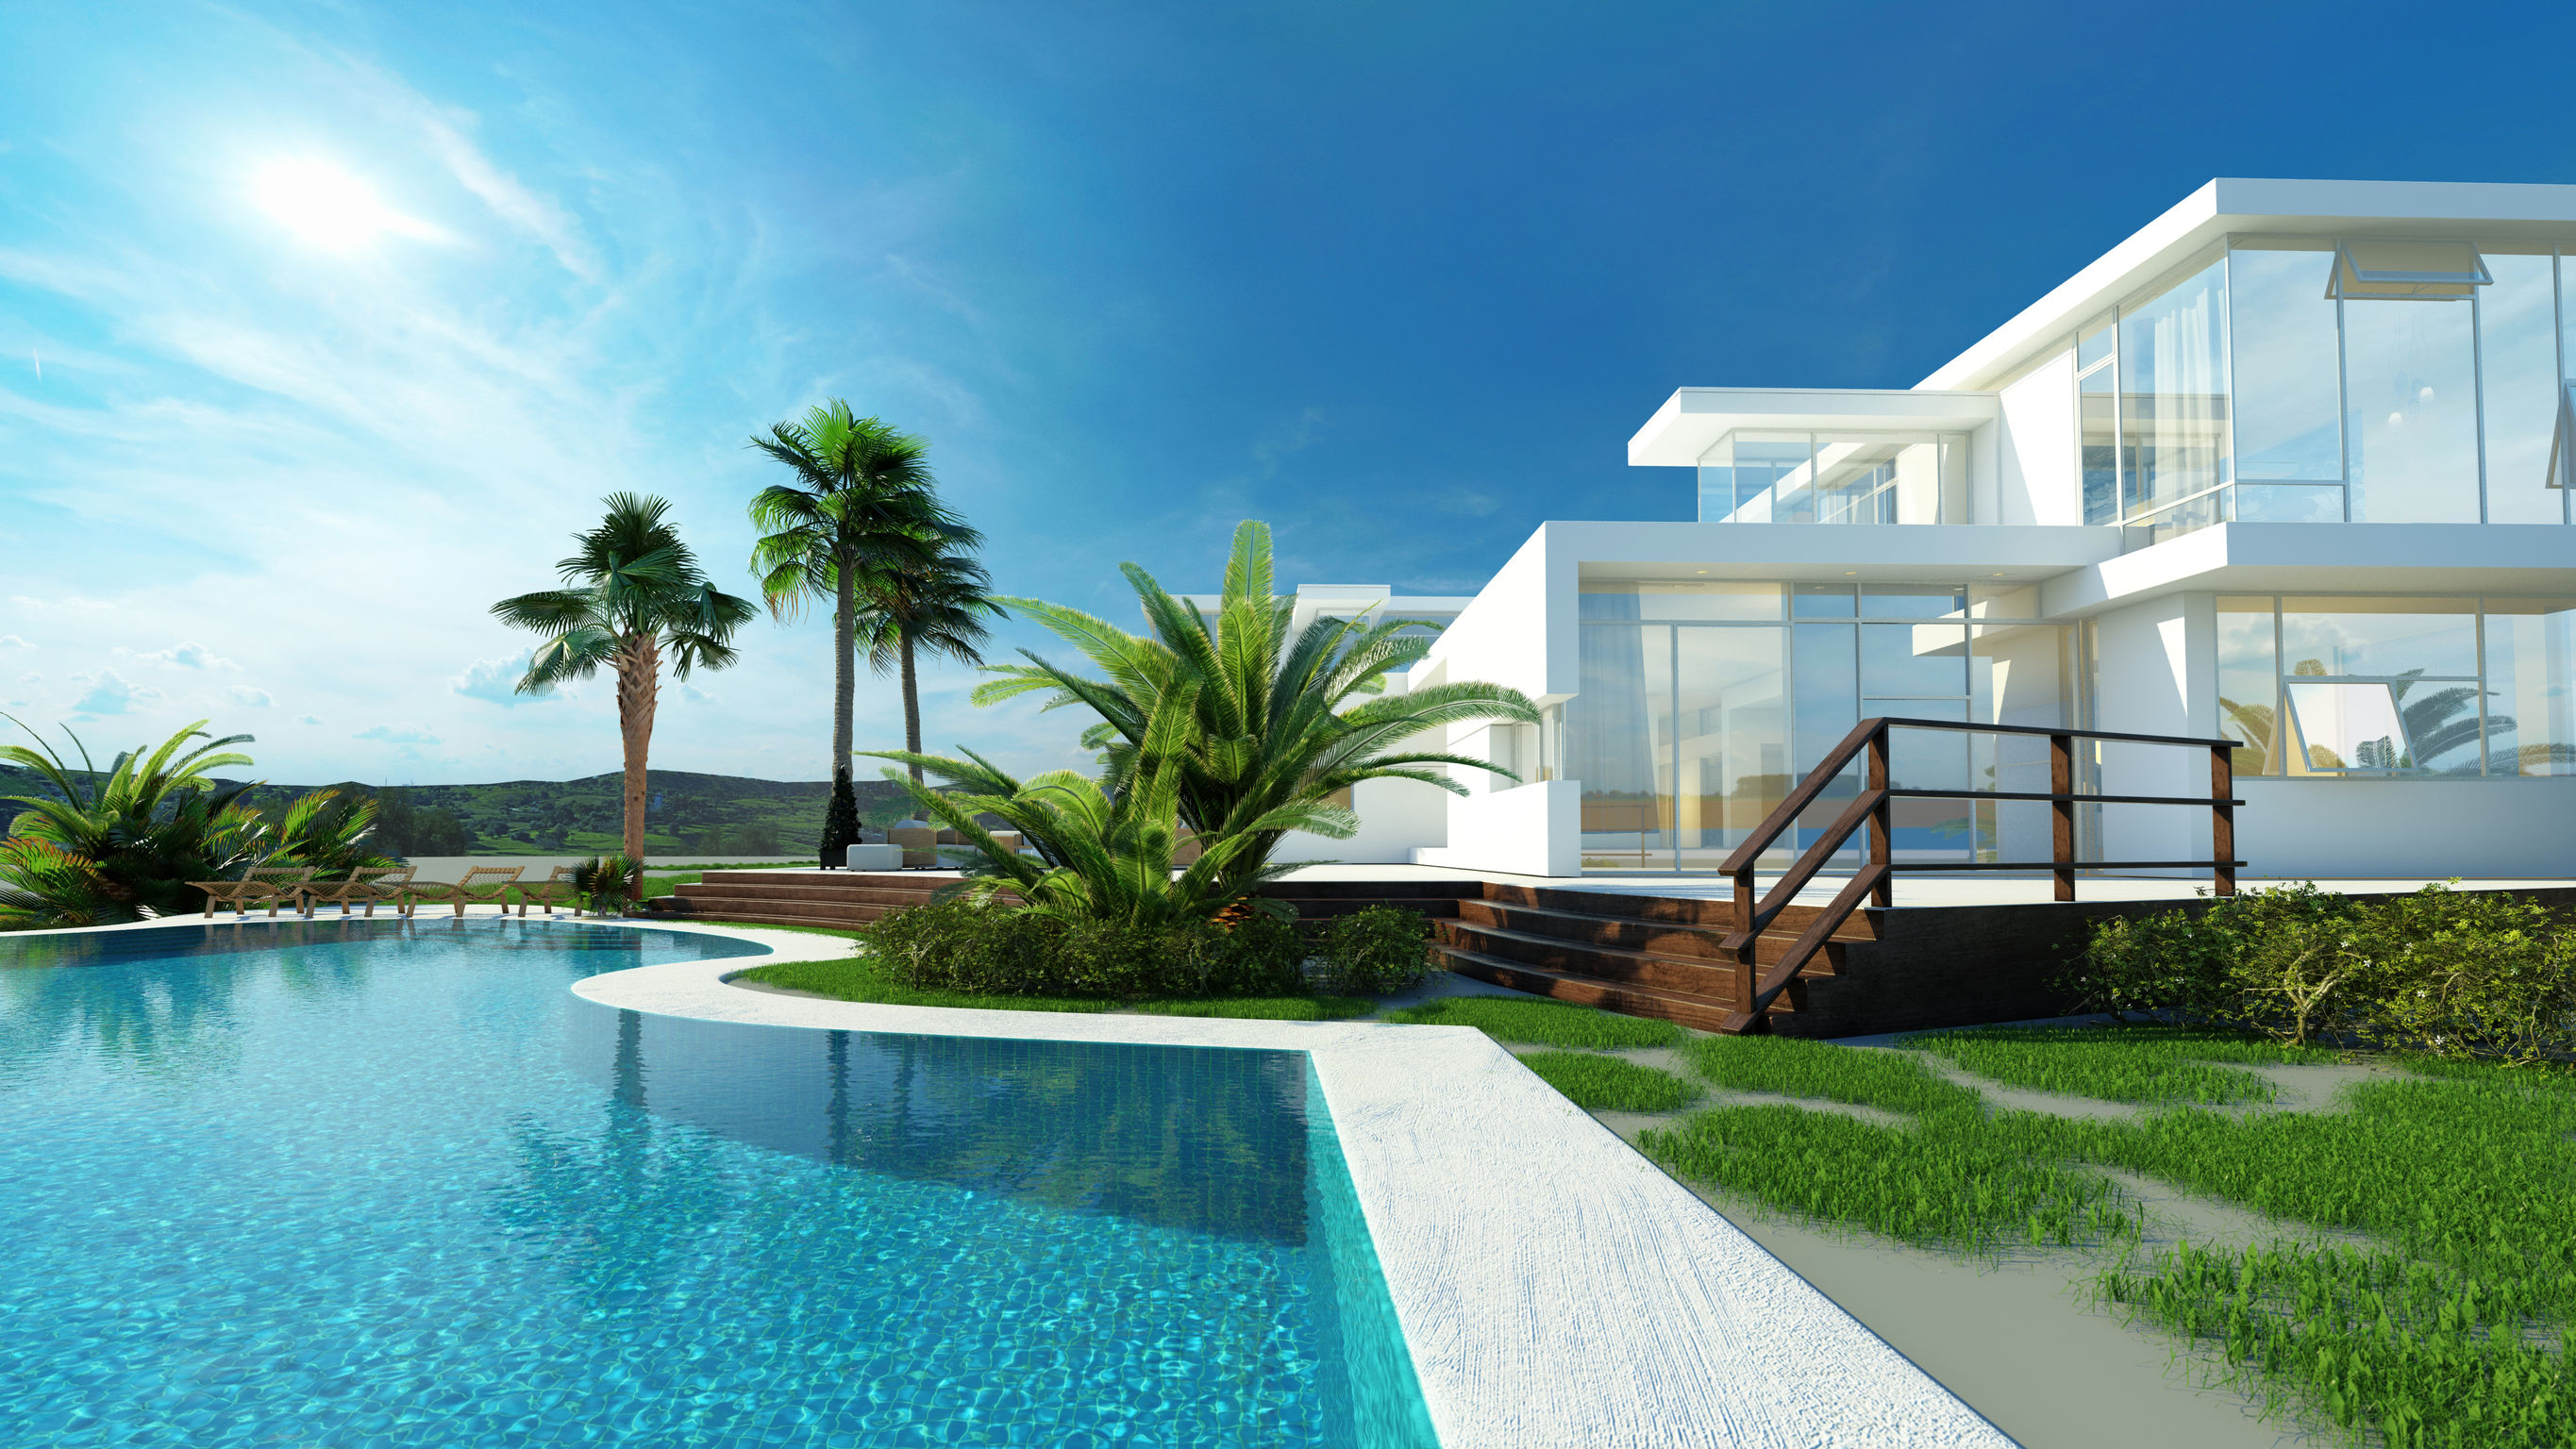 Swimming pools add value to south florida homes when well for Houses for sale pool